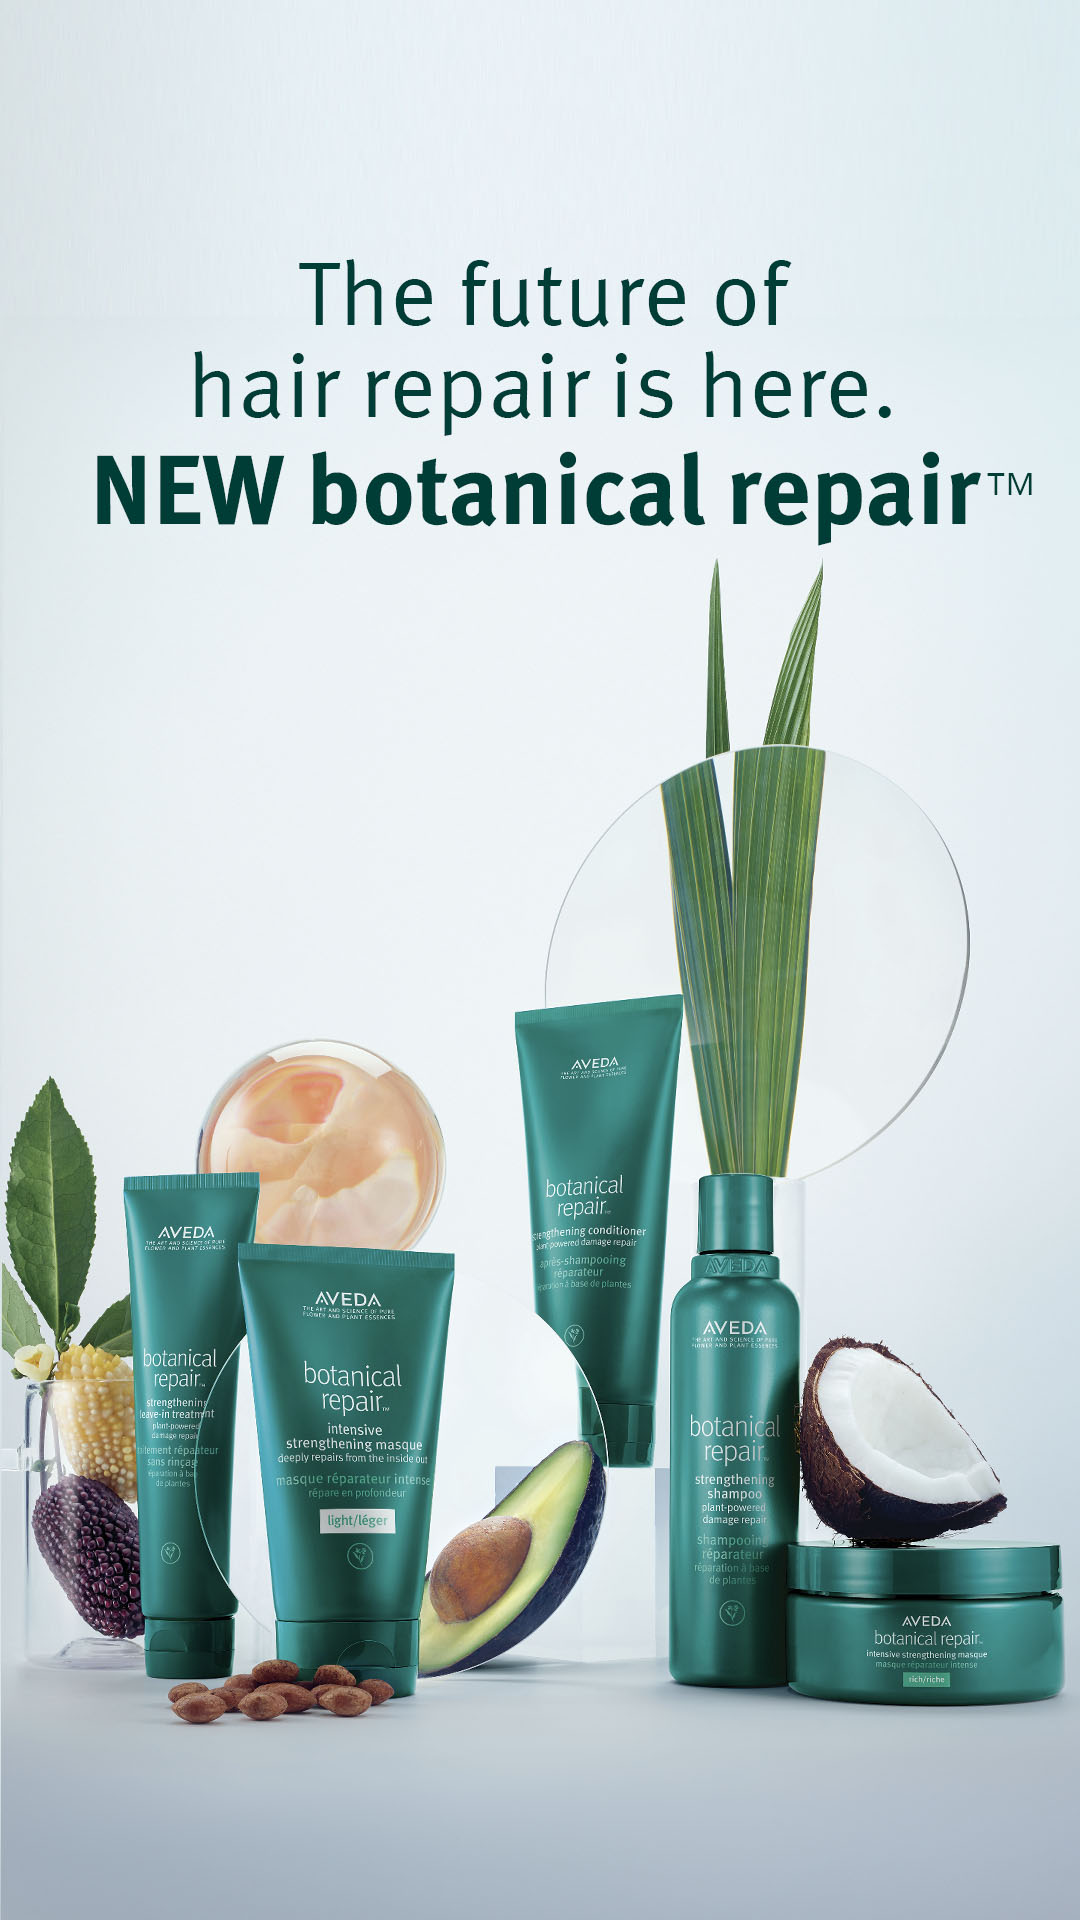 Aveda Introduces NEW Botanical Repair System! from Aveda